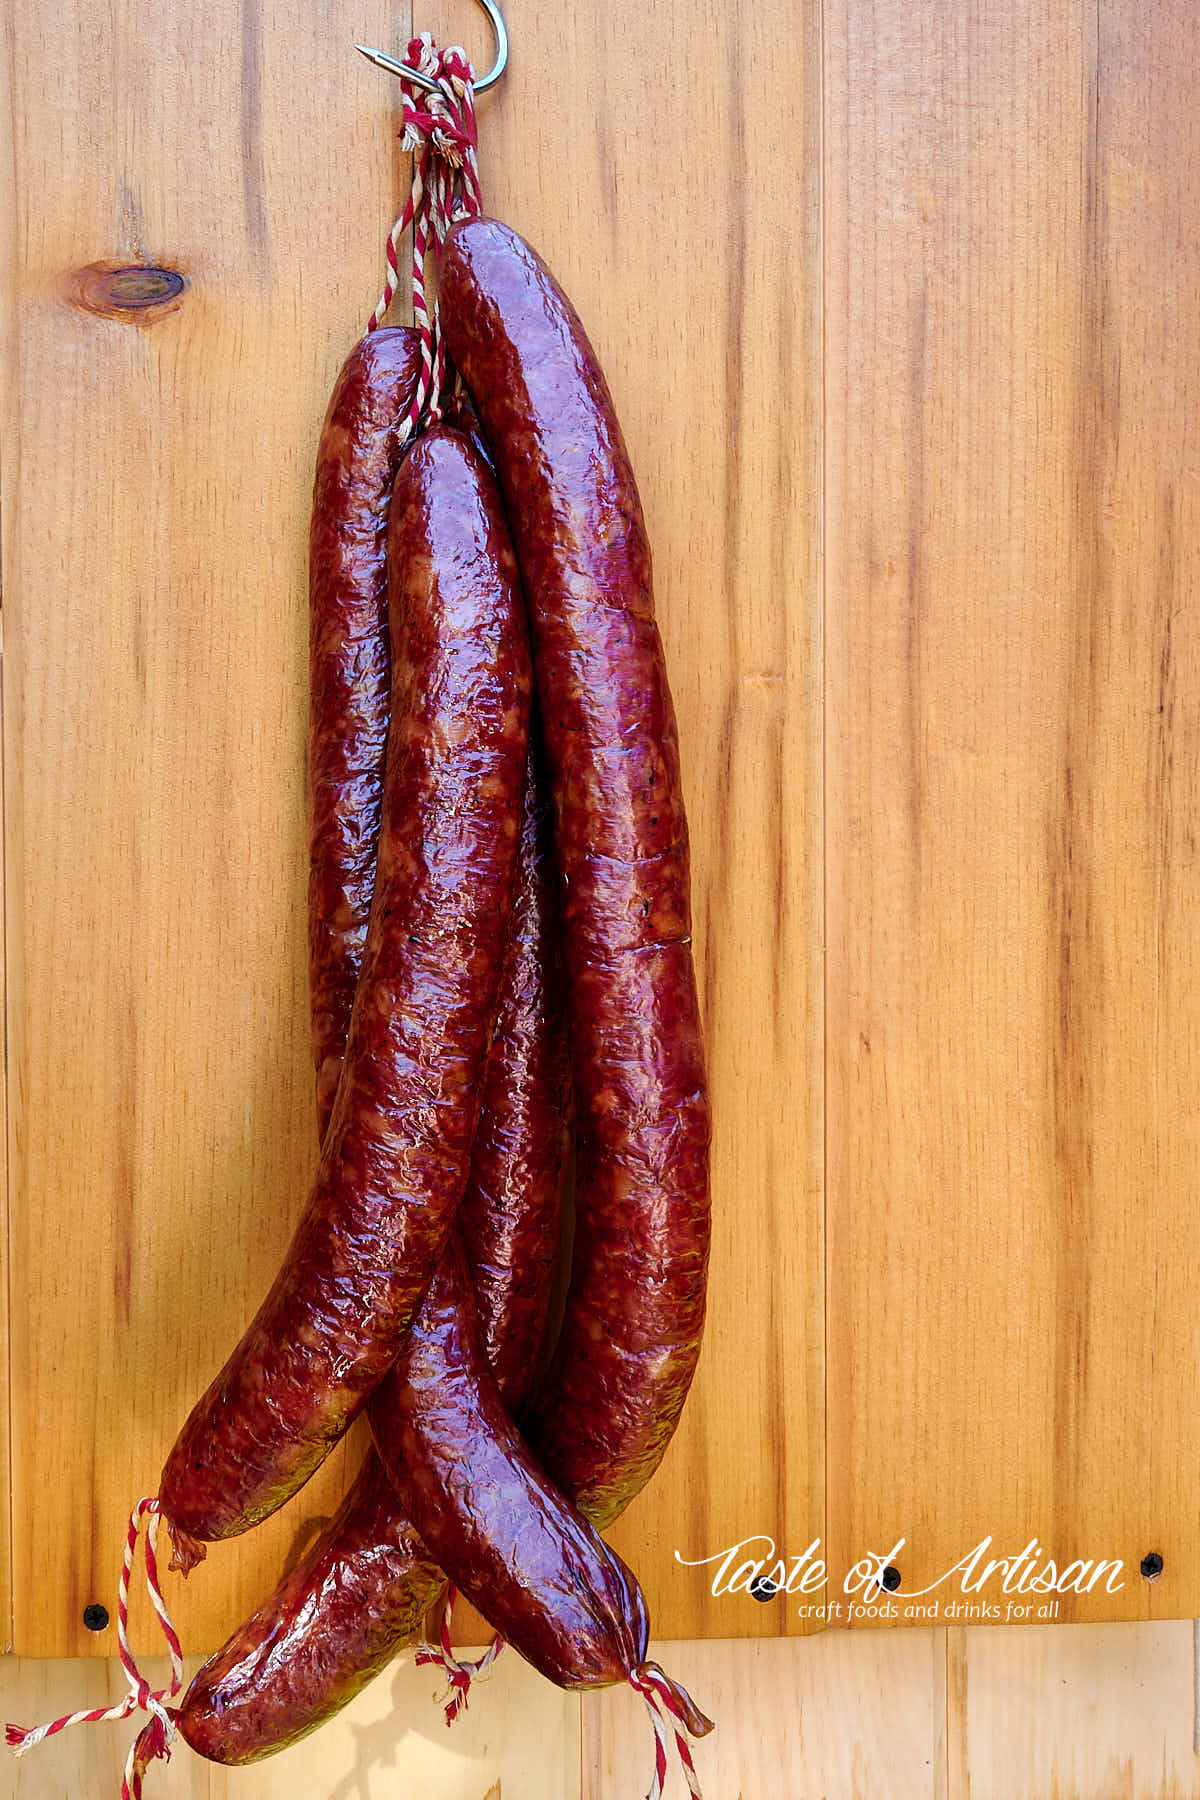 Dark mahogany color Andouille sausages after 7 hours of smoking.7